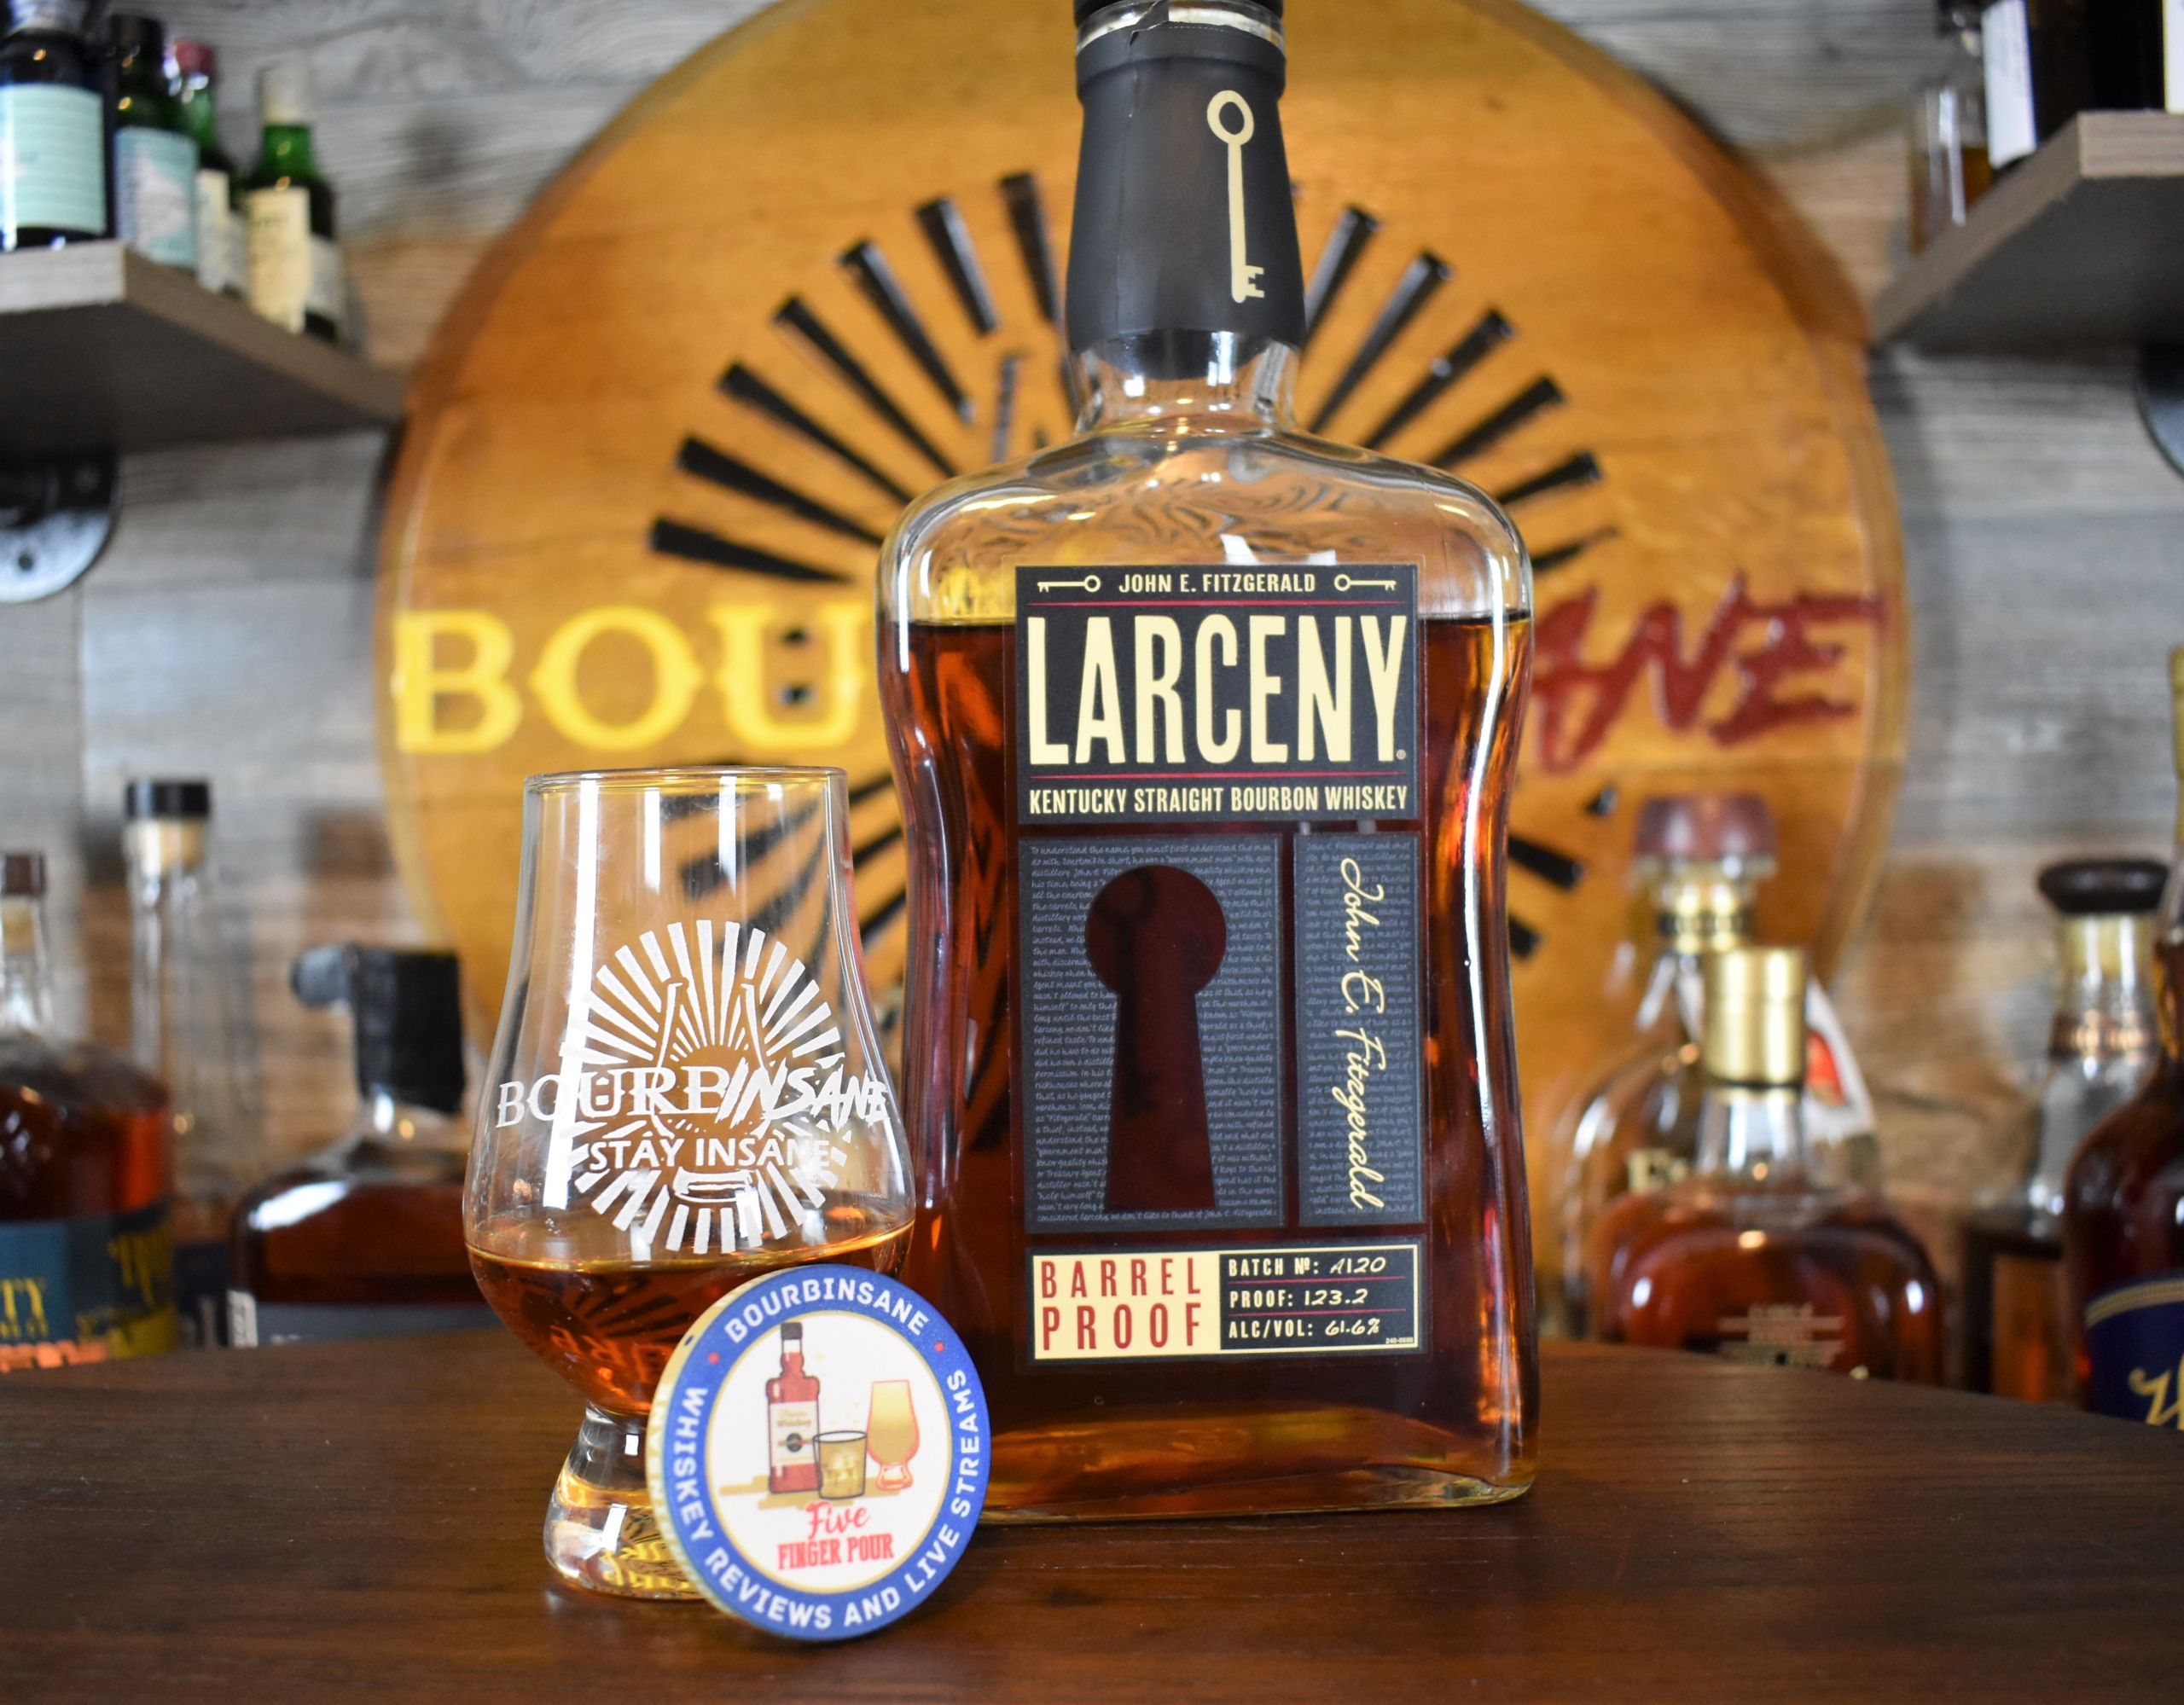 Larceny Barrel Proof Kentucky Straight Bourbon Whiskey Batch A120